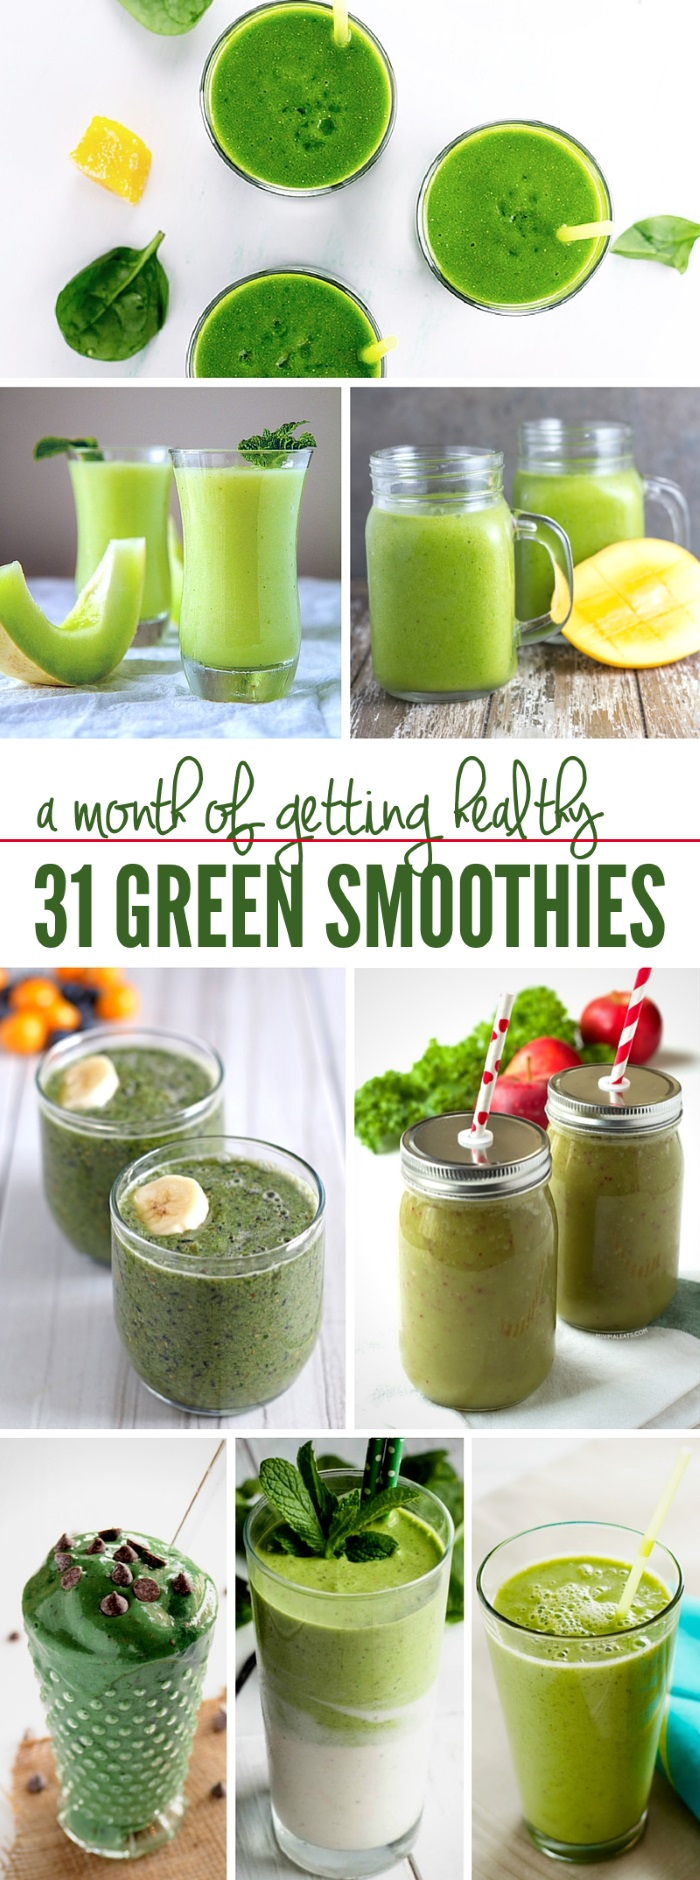 These green smoothie recipes are delicious and tasty! Homemade and packed full of nutrients, you won't want to miss out on these smoothie recipes! #onecrazyhouse #greensmoothierecipes #DIYsmoothies